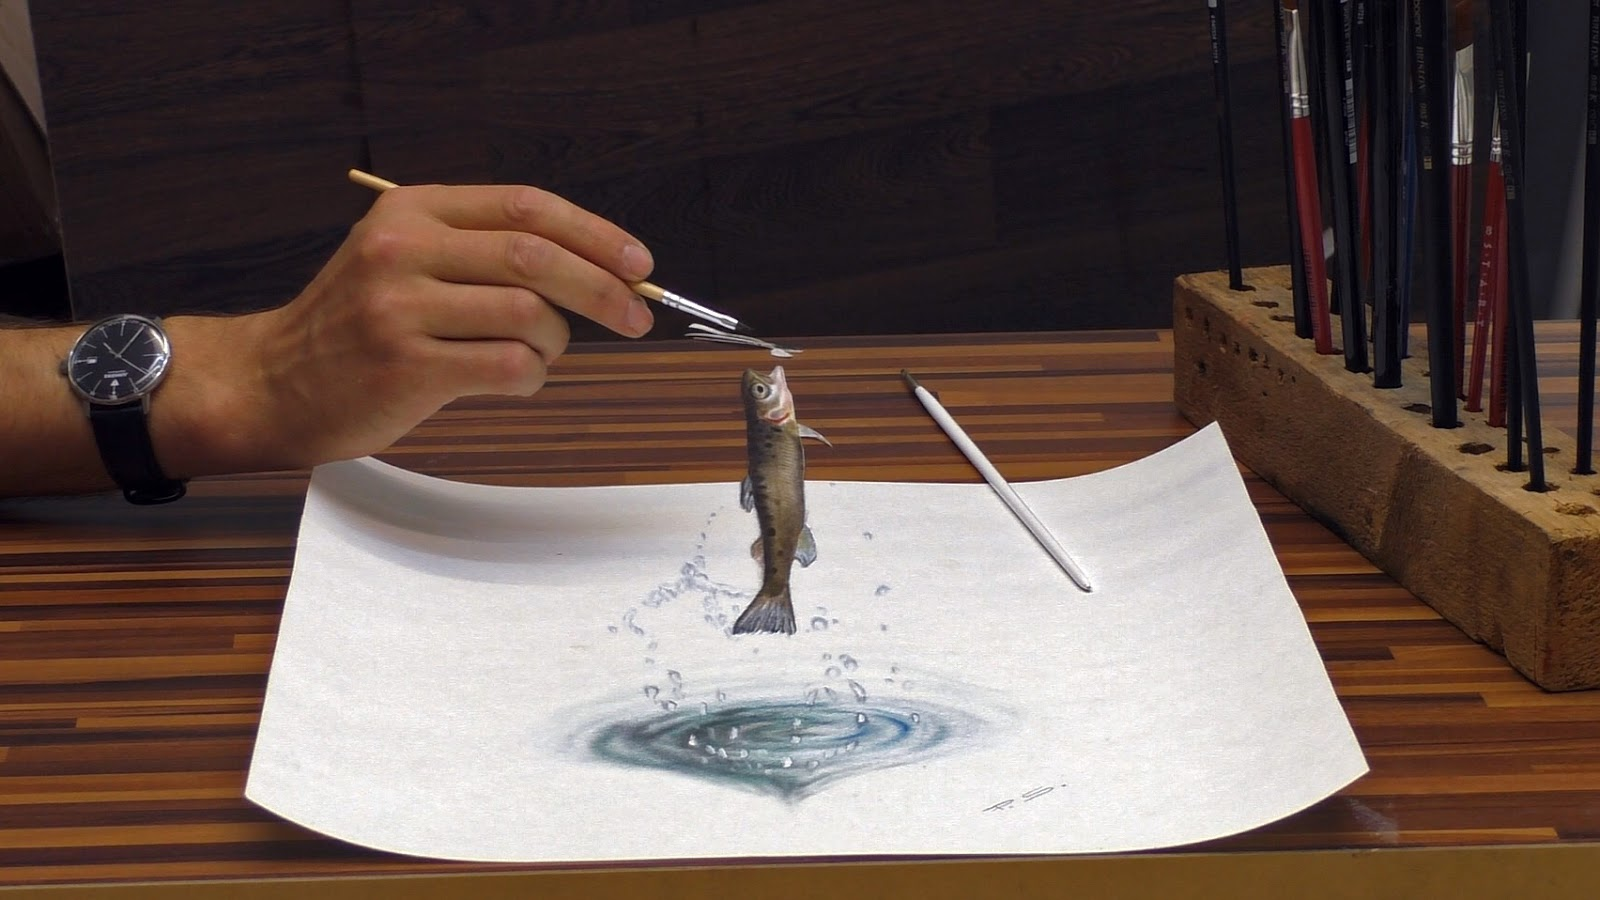 14-Jumping-Forelle-Stefan-Pabst-3D-Optical-Illusions-Drawings-and-Paintings-www-designstack-co